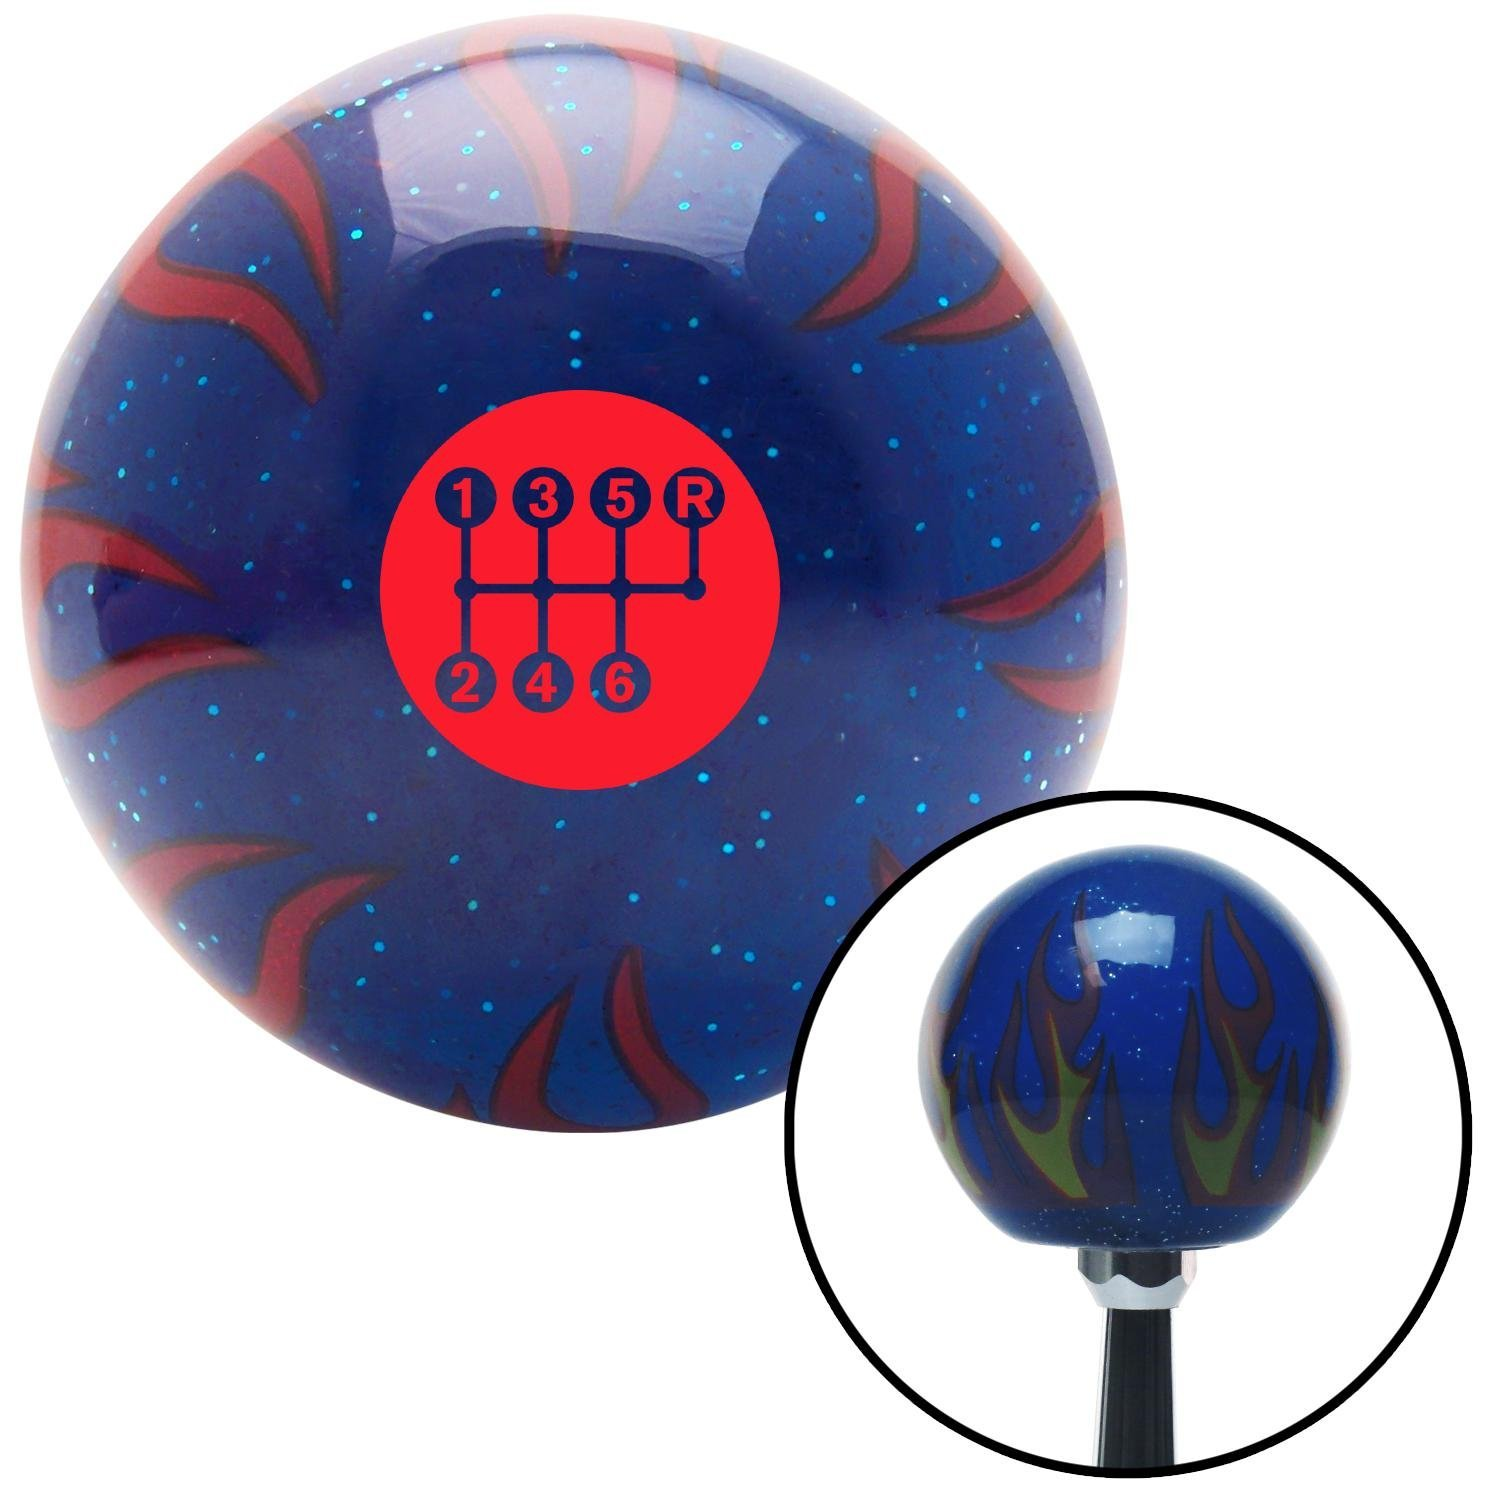 American Shifter 298307 Shift Knob Red 6 Speed Shift Pattern - Dots 26 Blue Flame Metal Flake